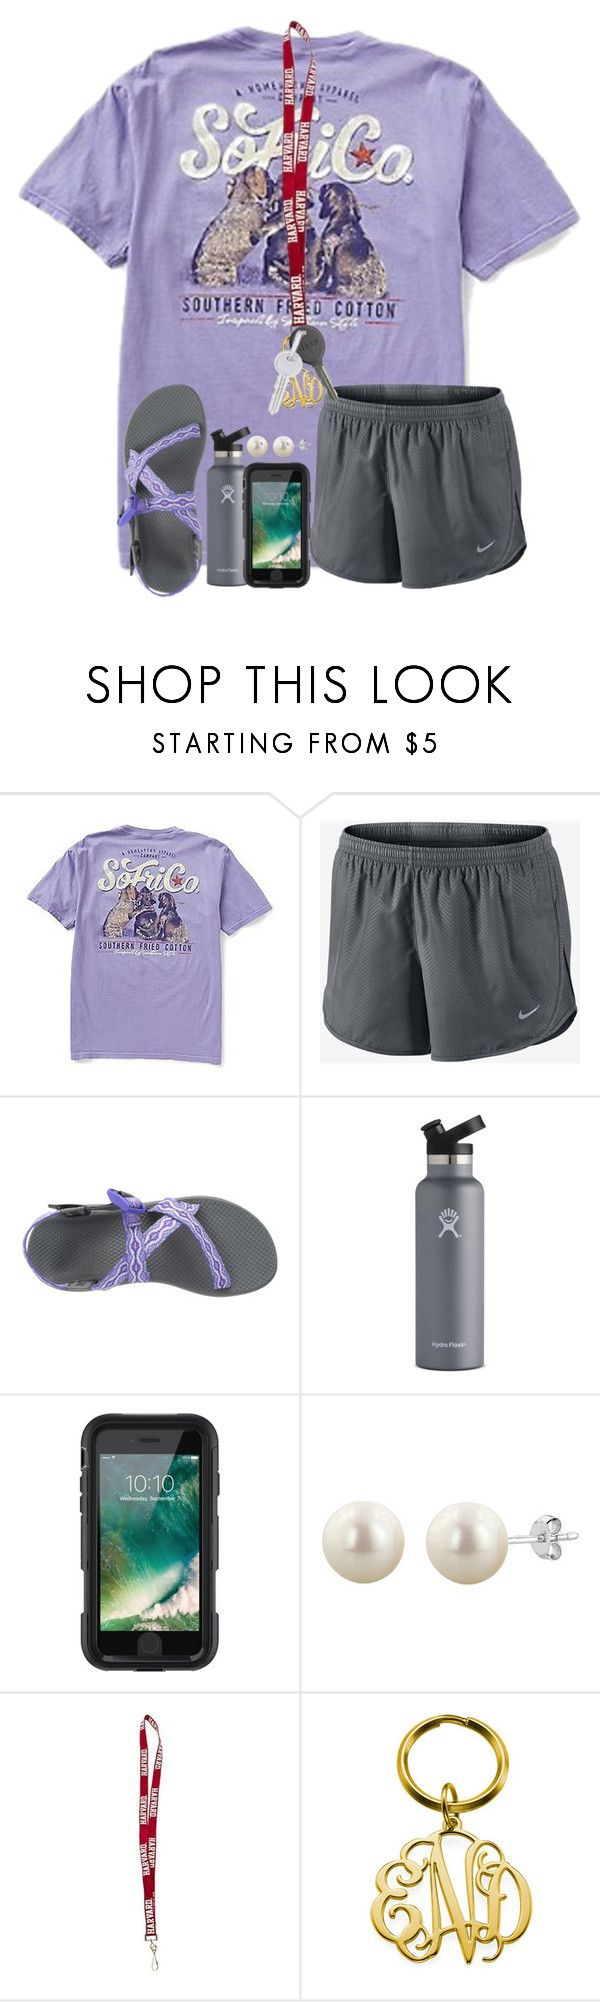 """""""the clock don't stop"""" by karinaceleste ❤ liked on Polyvore featuring NIKE, Chaco, Hydro Flask, Griffin, Cherokee and Rembrandt Charms"""